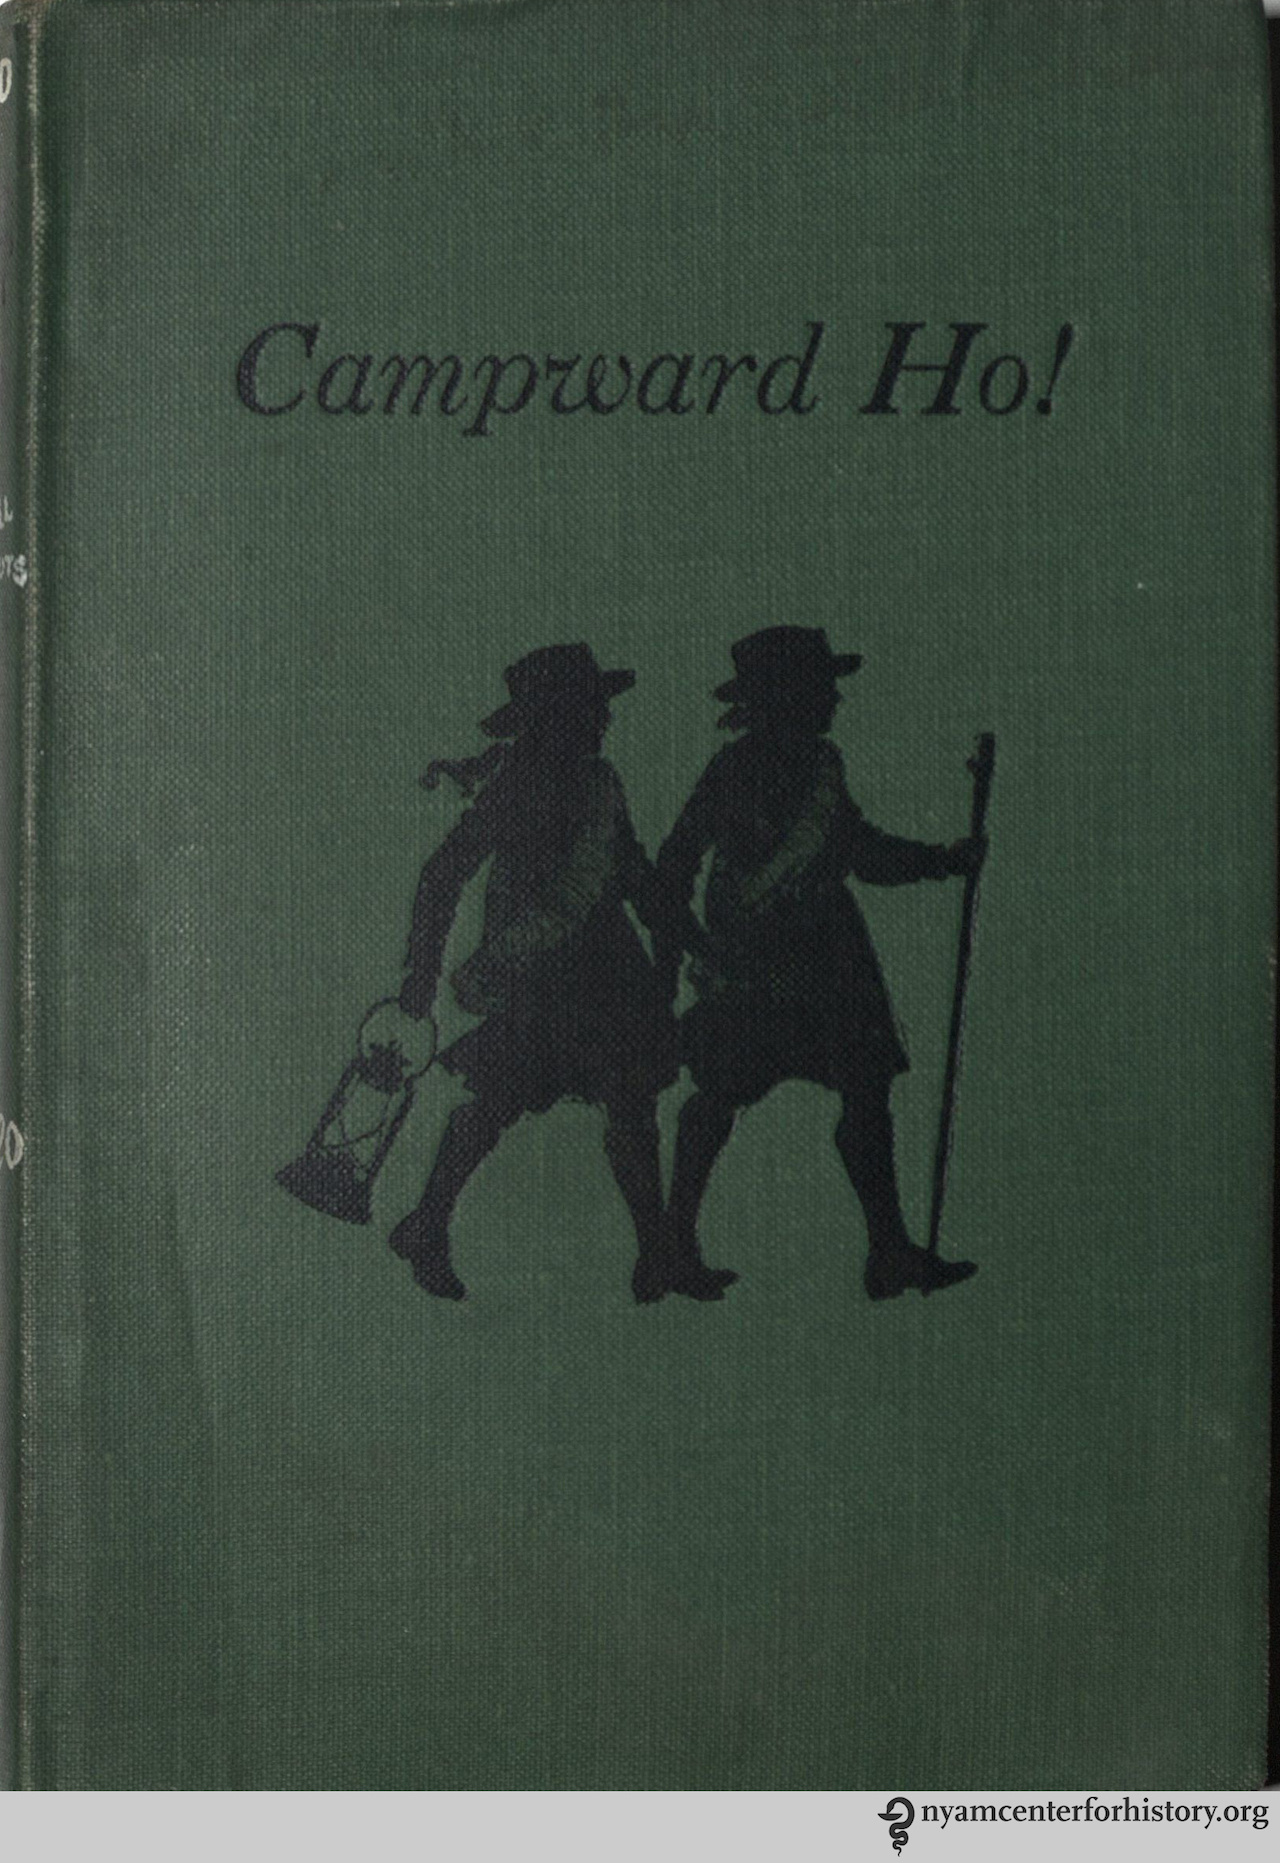 'Campward Ho!' by Girl Scouts of the United States of Ameirca (1920)